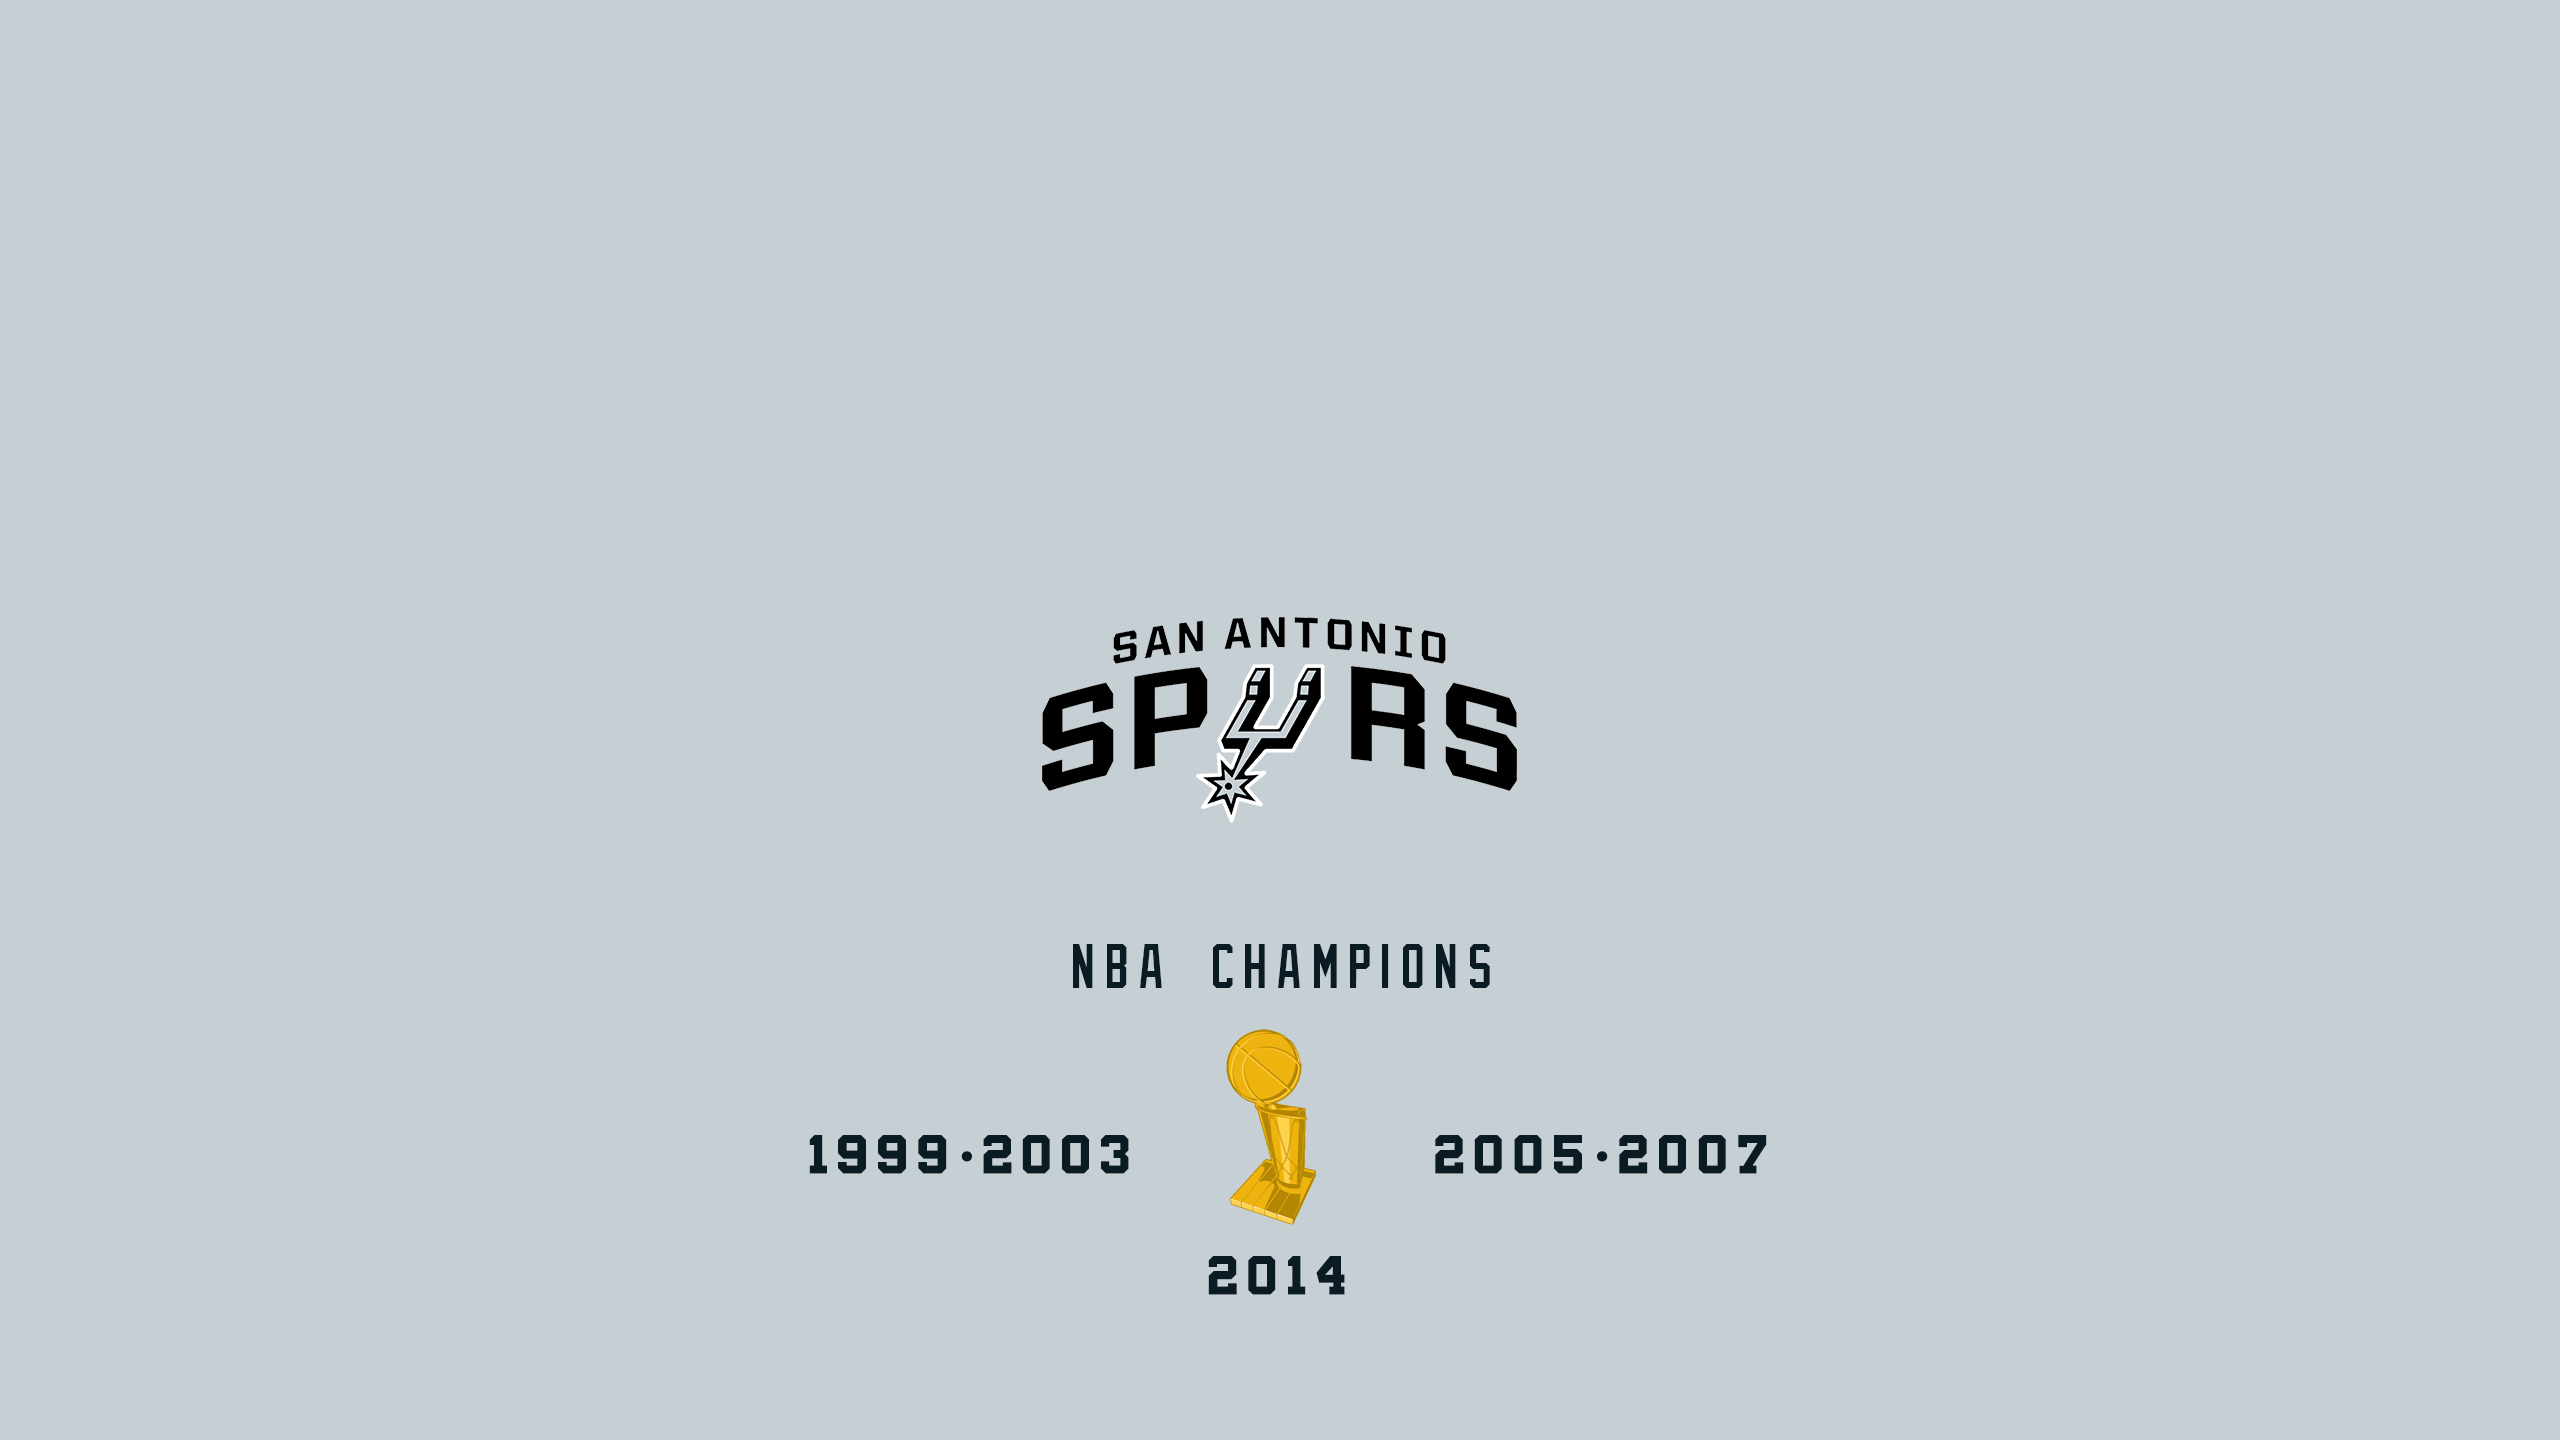 San Antonio Spurs - NBA Champs